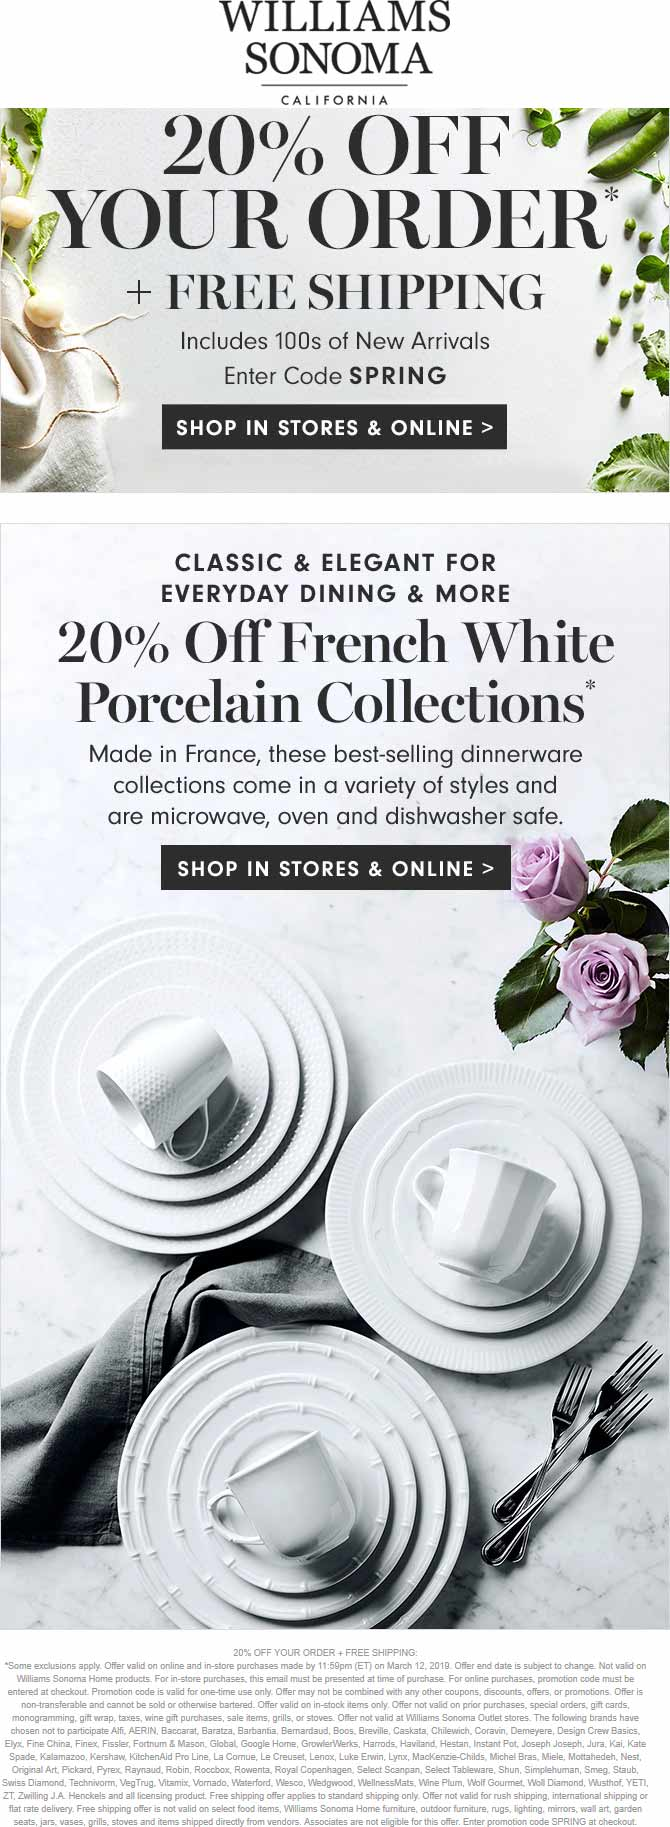 WilliamsSonoma.com Promo Coupon 20% off today at Williams Sonoma, ditto online